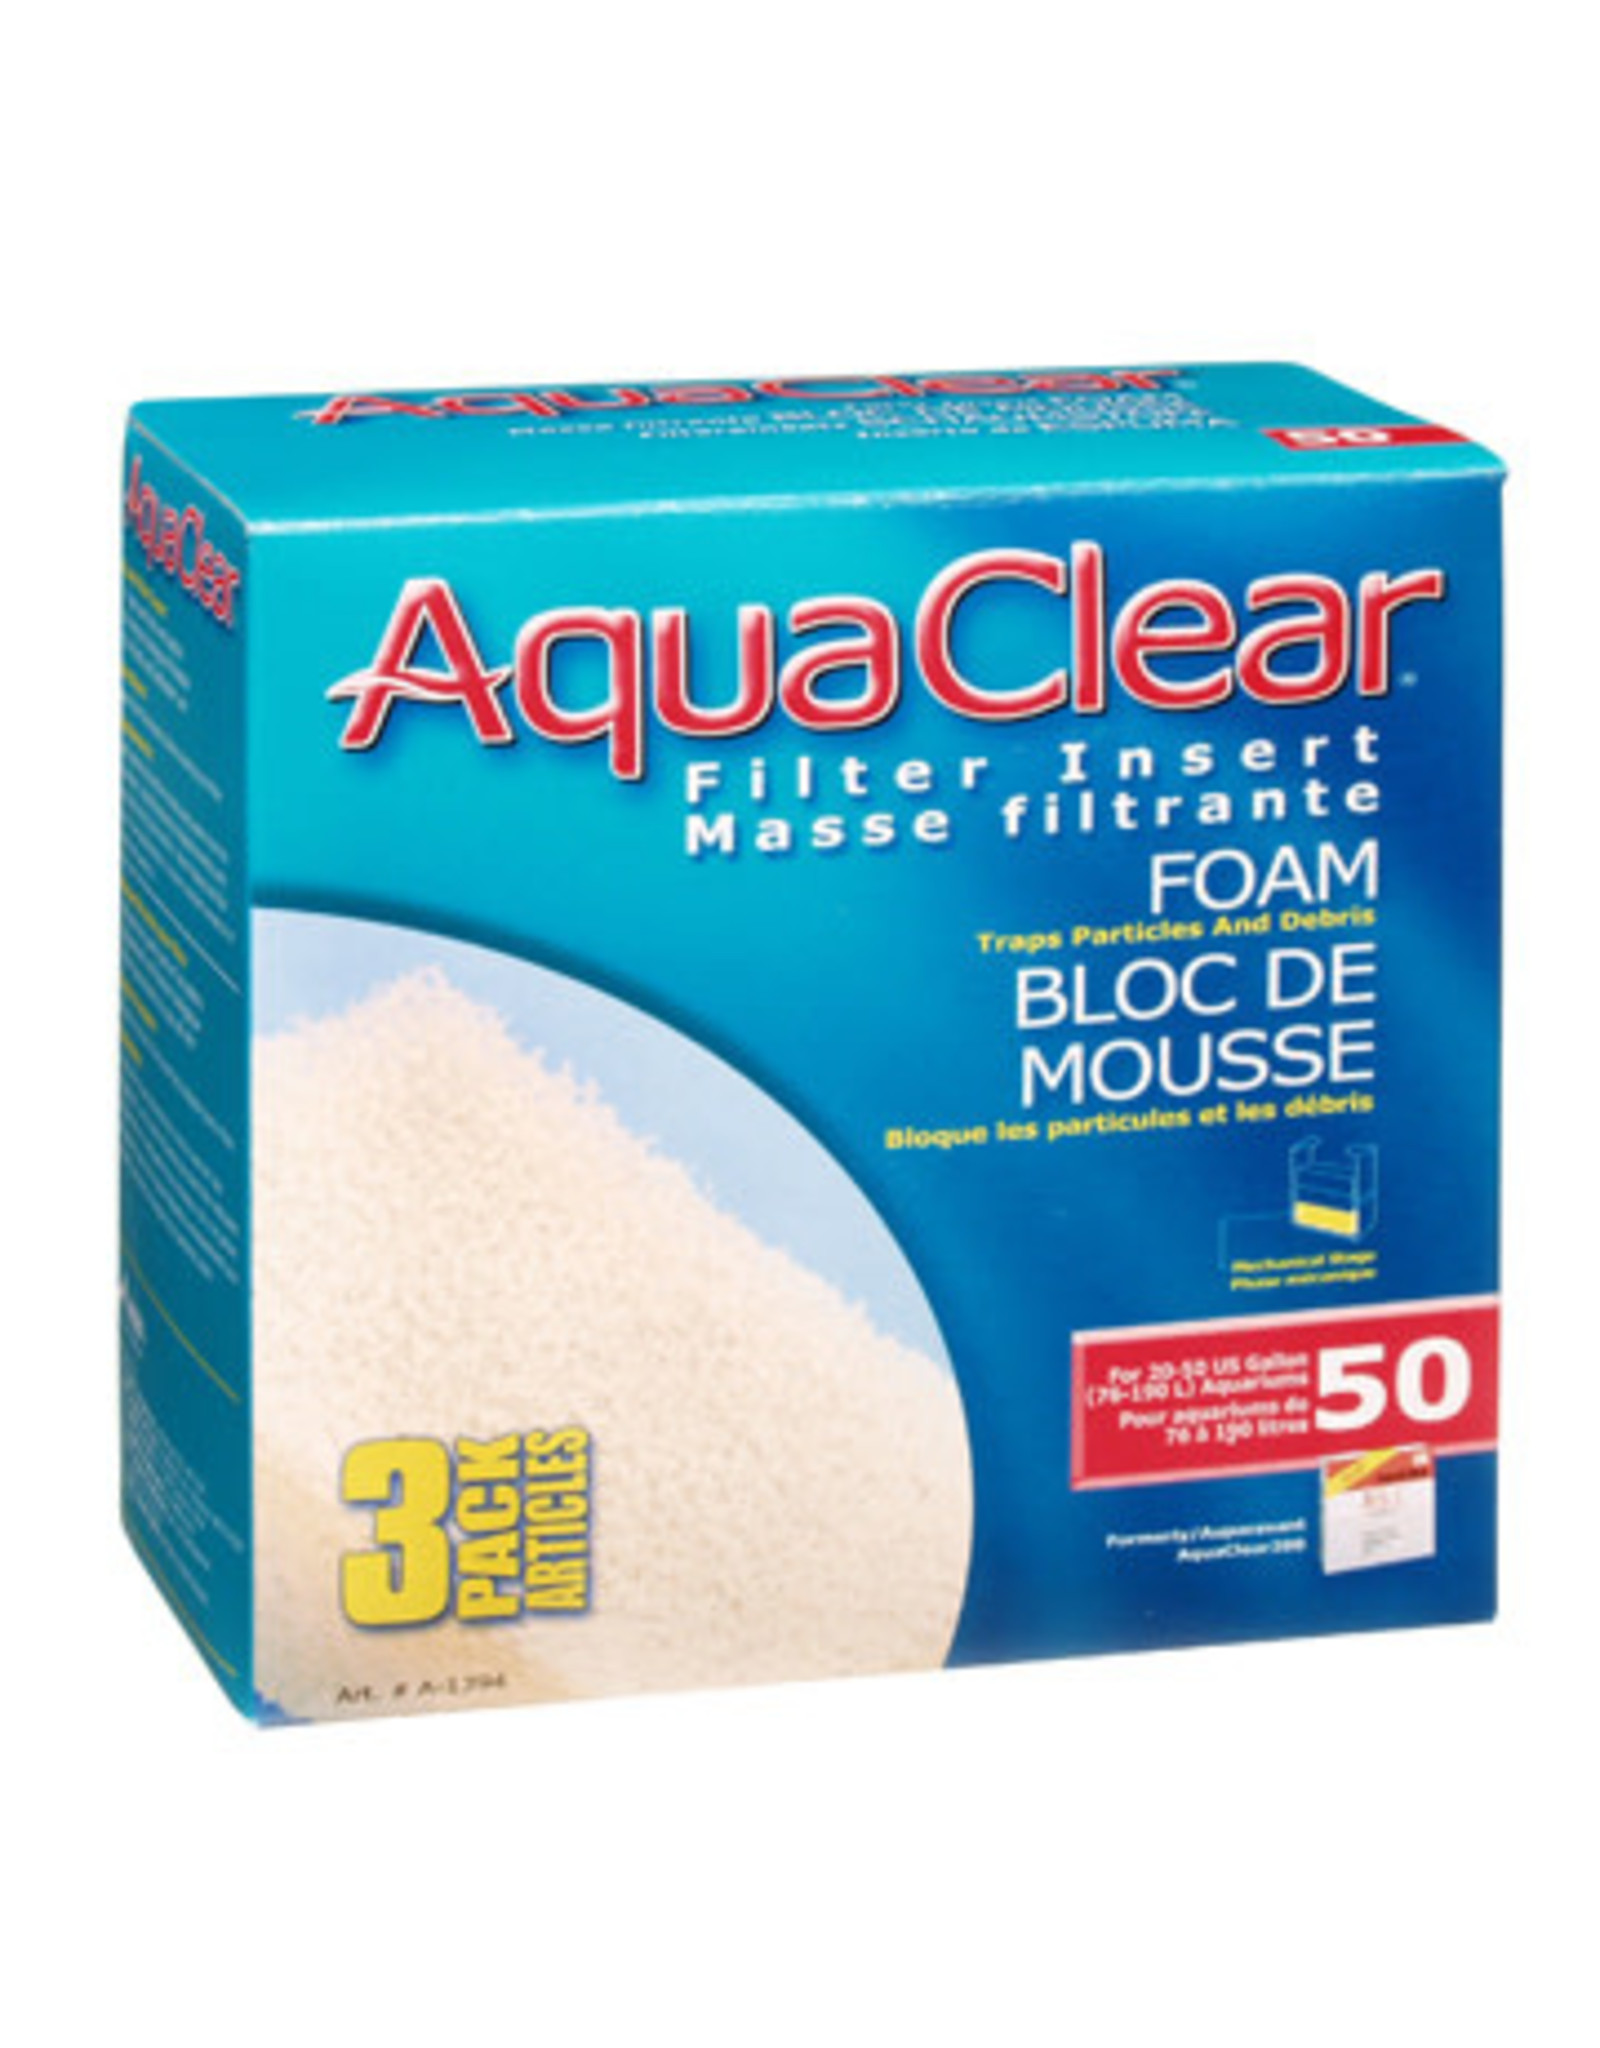 AquaClear AquaClear 50 Foam Filter insert 3 Pack